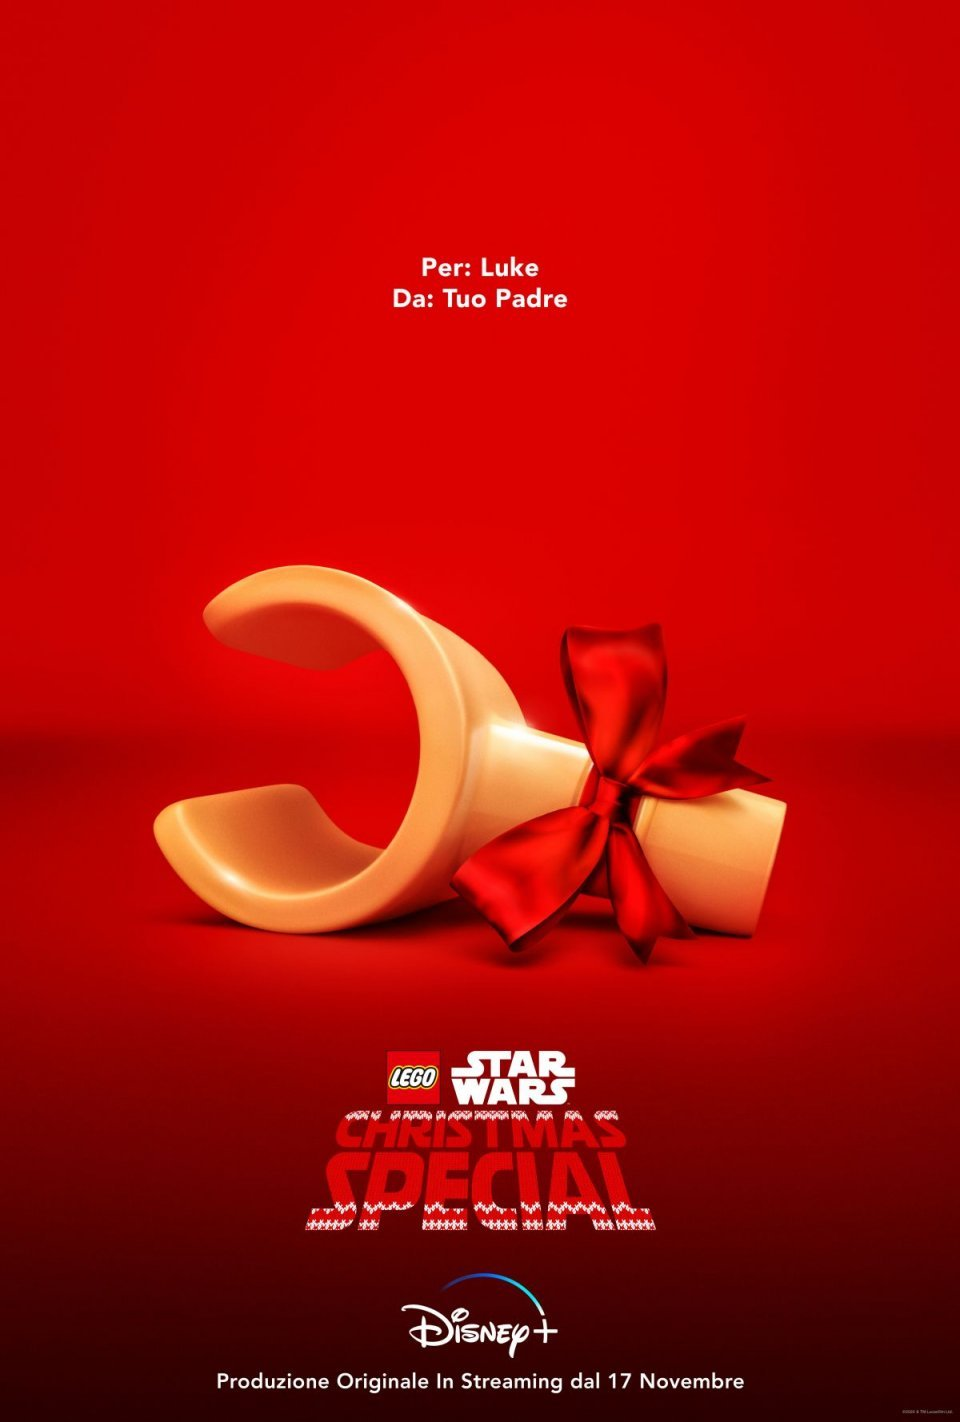 Lego Star Wars Christmas Special Poster